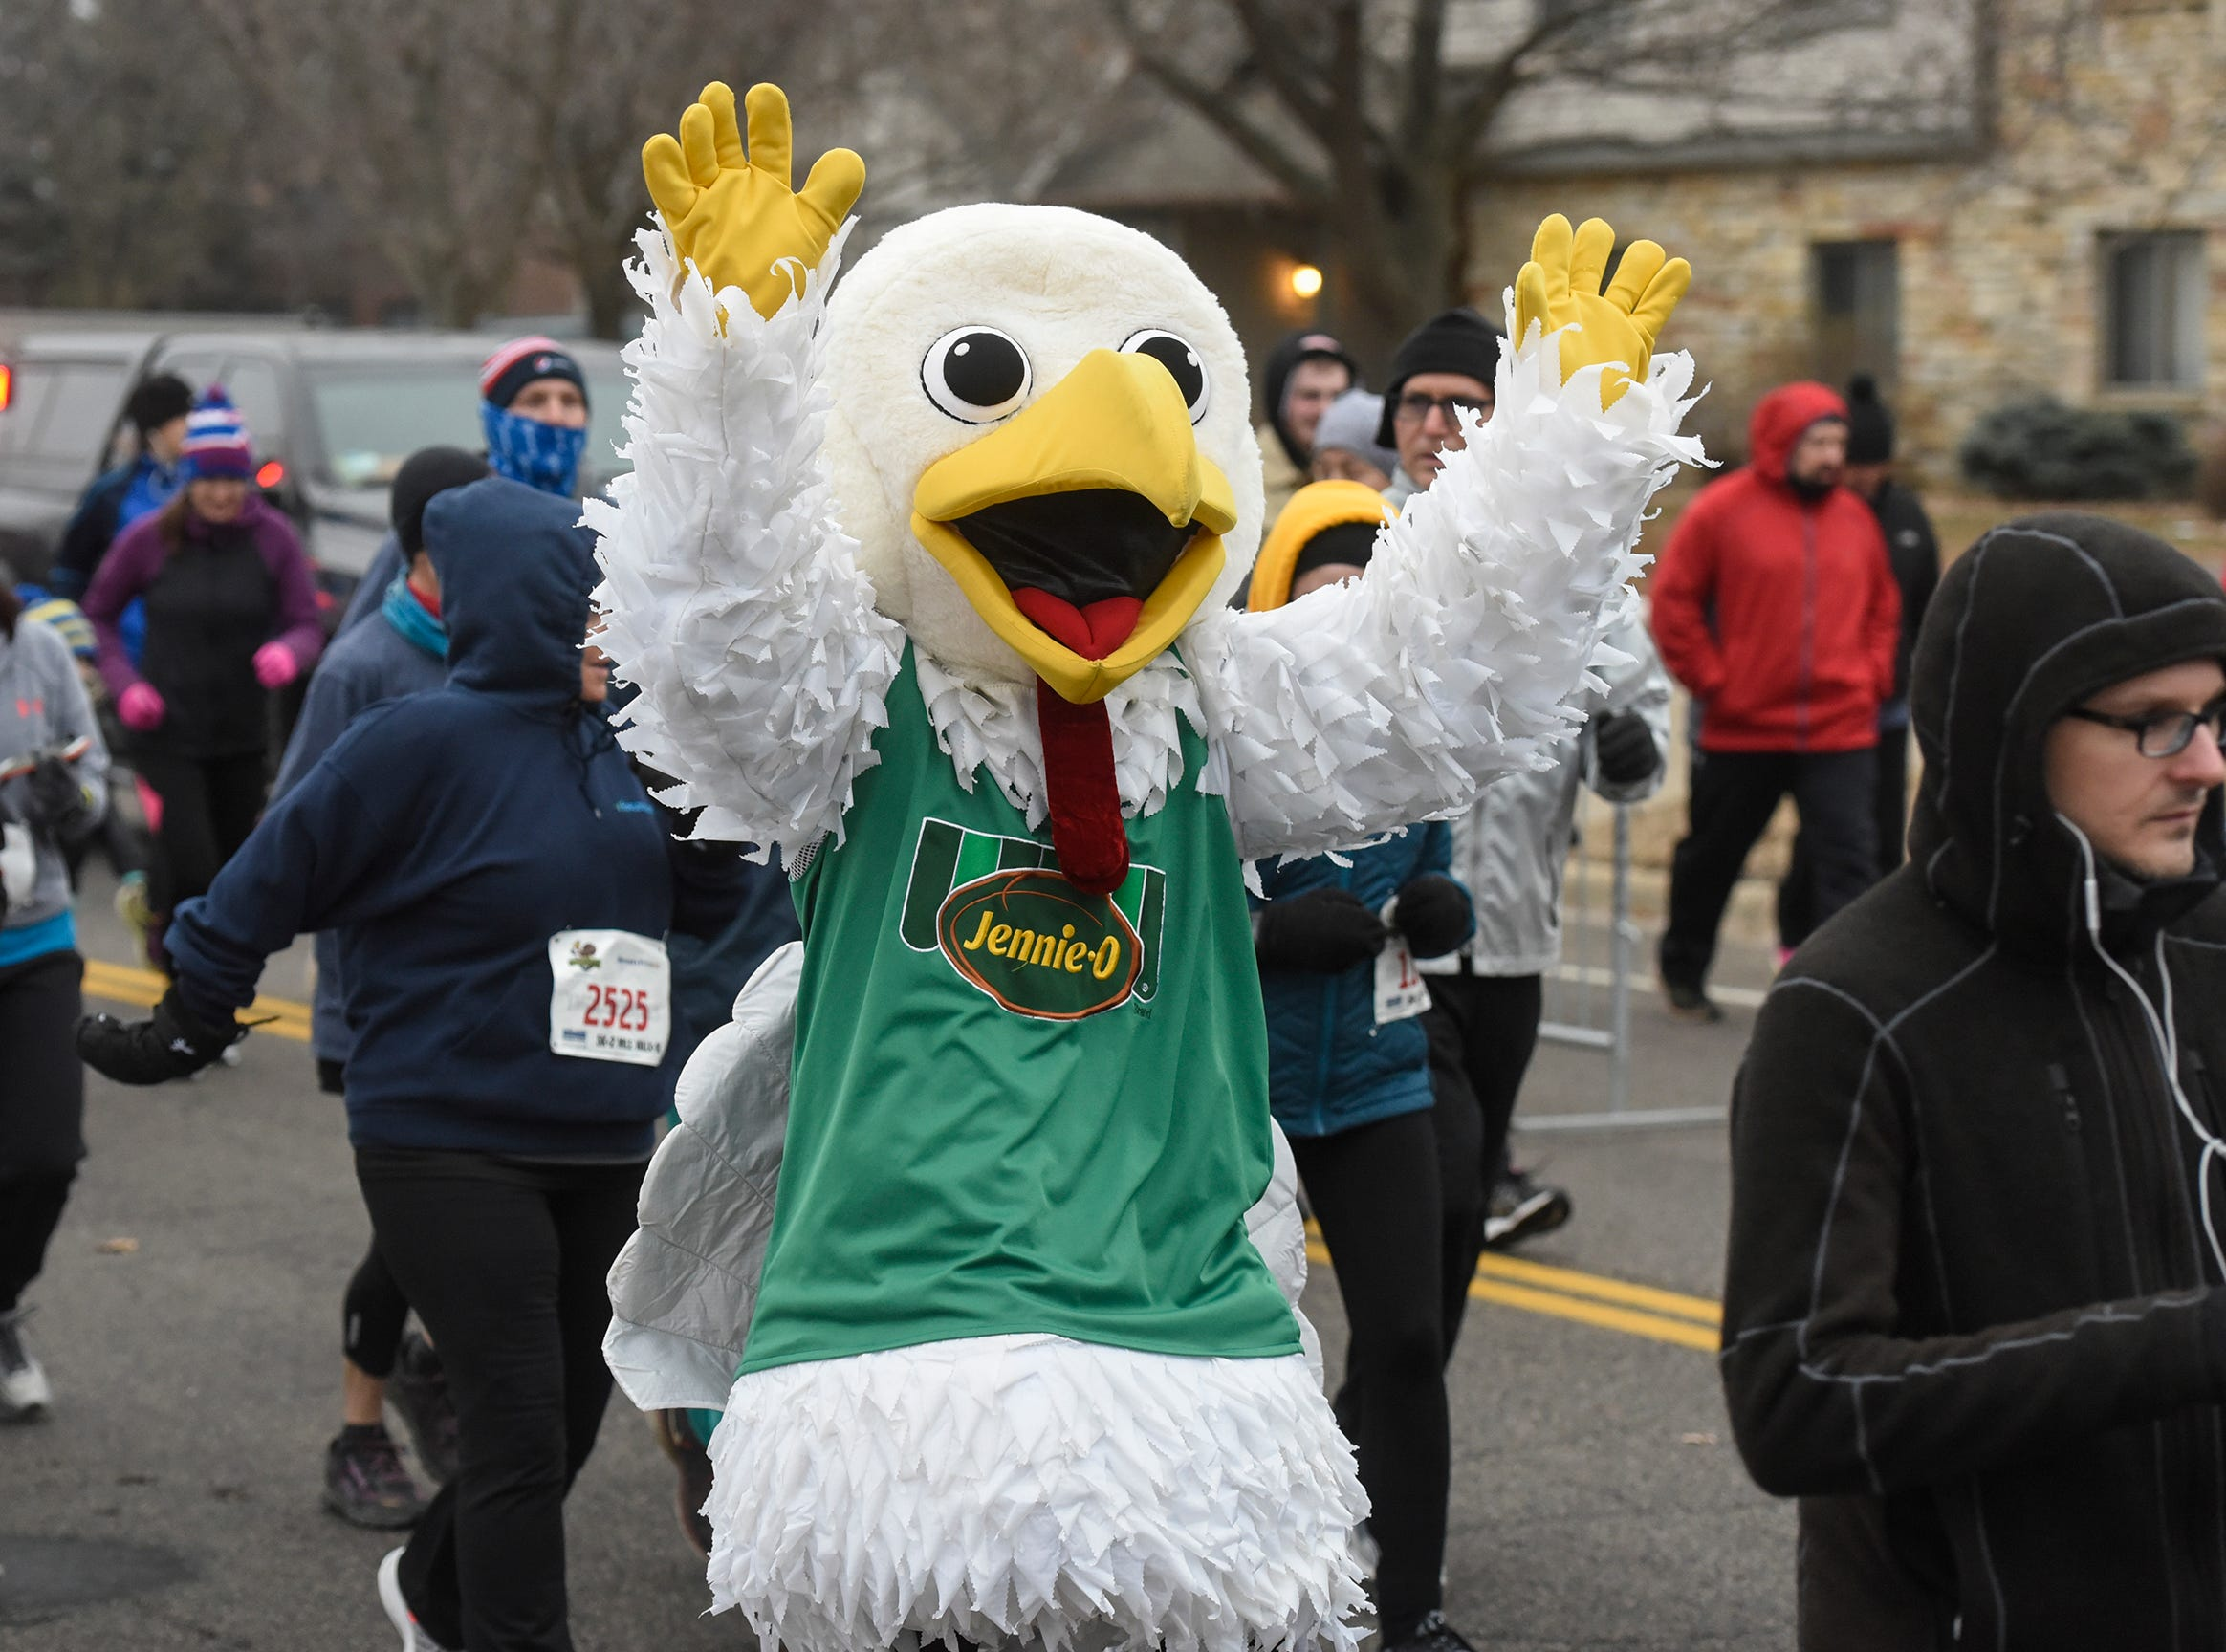 The Jennie-O mascot takes part in the Wishbone 5K Thursday, Nov. 22, at the St. Cloud Area Family YMCA.